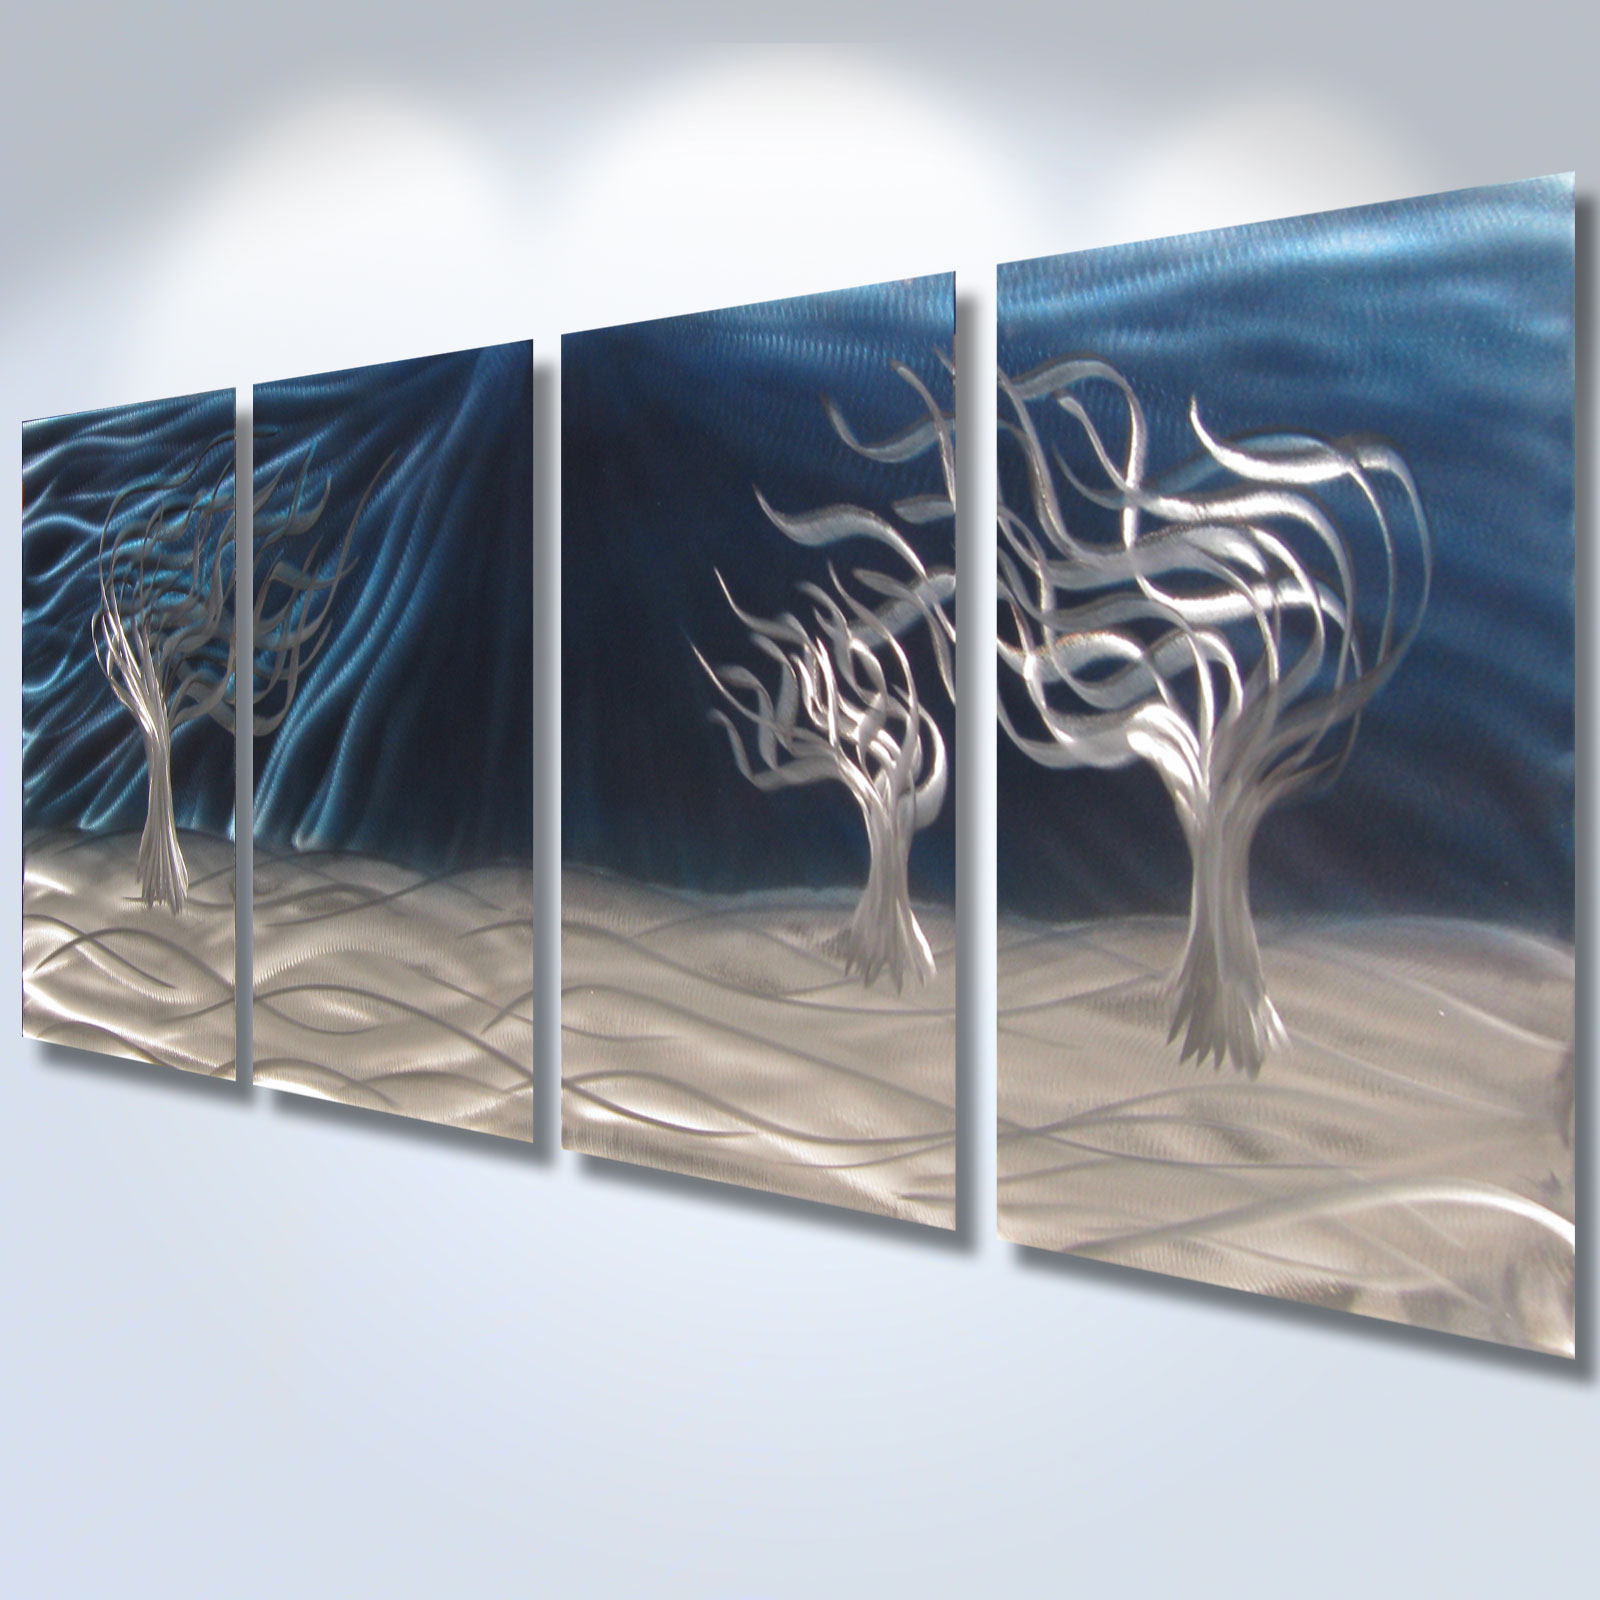 Blue Metal Wall Art Brilliant 3 Trees Blue  Abstract Metal Wall Art Contemporary Modern Decor Inspiration Design